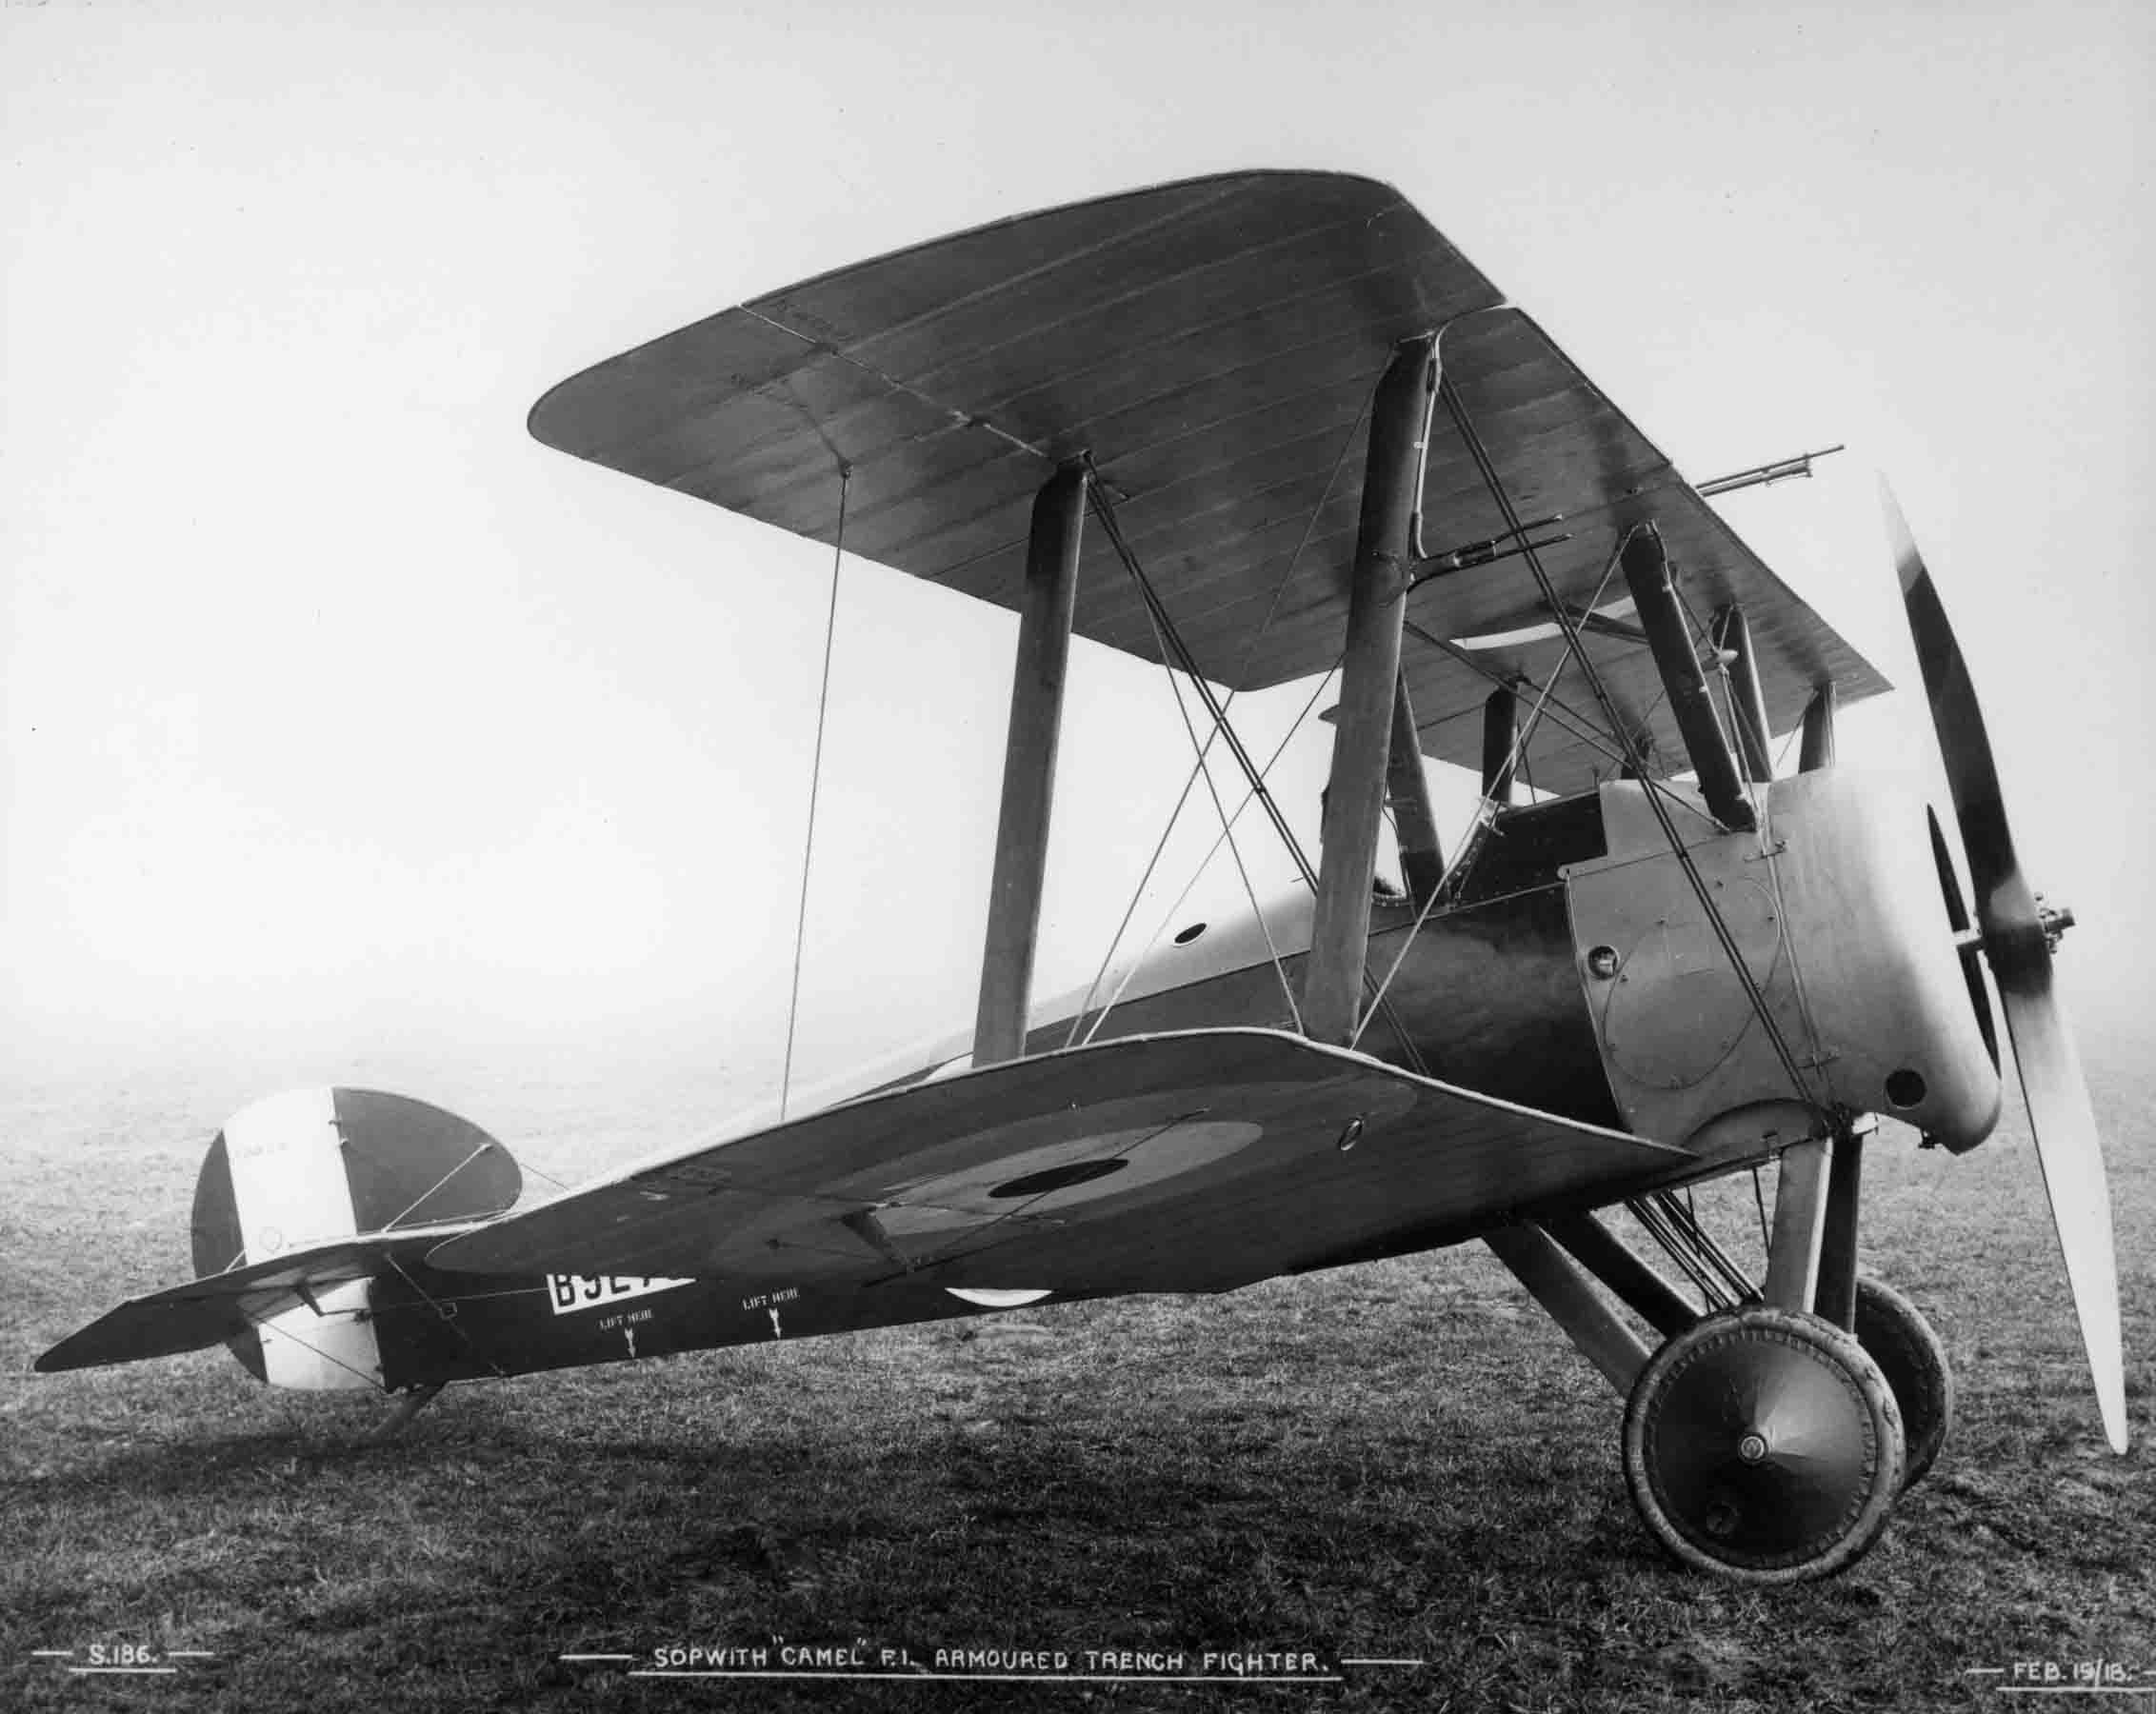 X003-2602-15727: The Sopwith T.F.1 Camel, serial B9278, photographed at Brooklands in February 1918.  The centre-section-mounted Lewis gun can be seen, as well as the two downward-firing Lewis guns between the undercarriage legs.